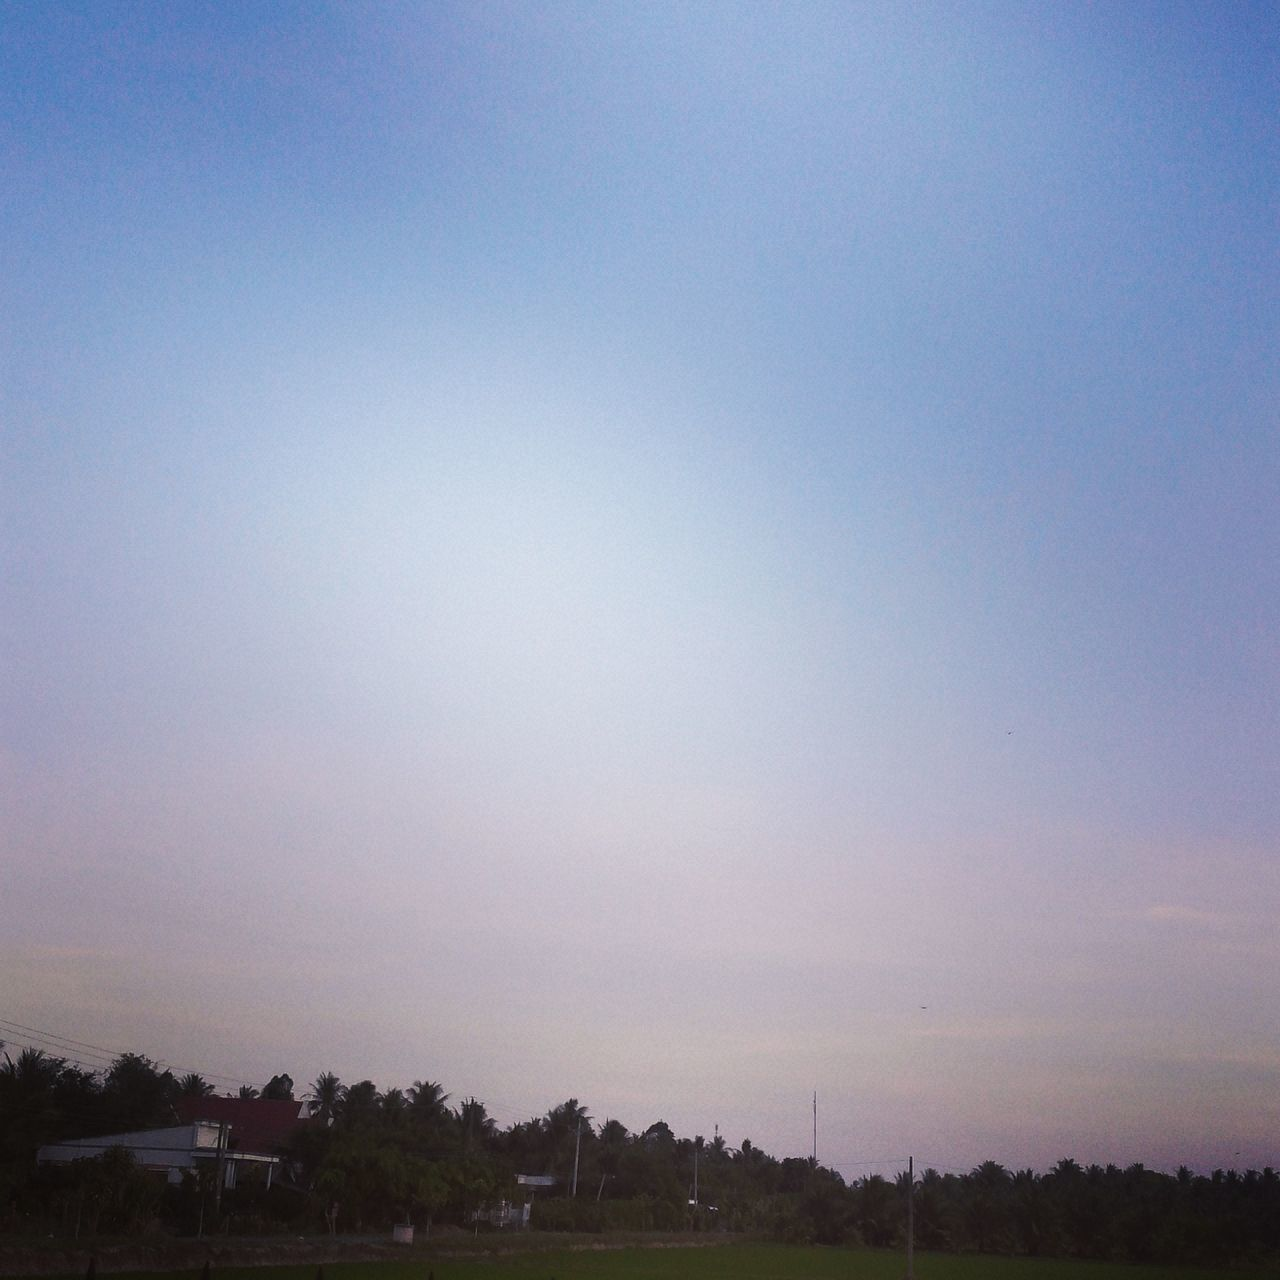 tranquility, nature, tranquil scene, no people, tree, beauty in nature, scenics, sunset, blue, outdoors, landscape, sky, clear sky, day